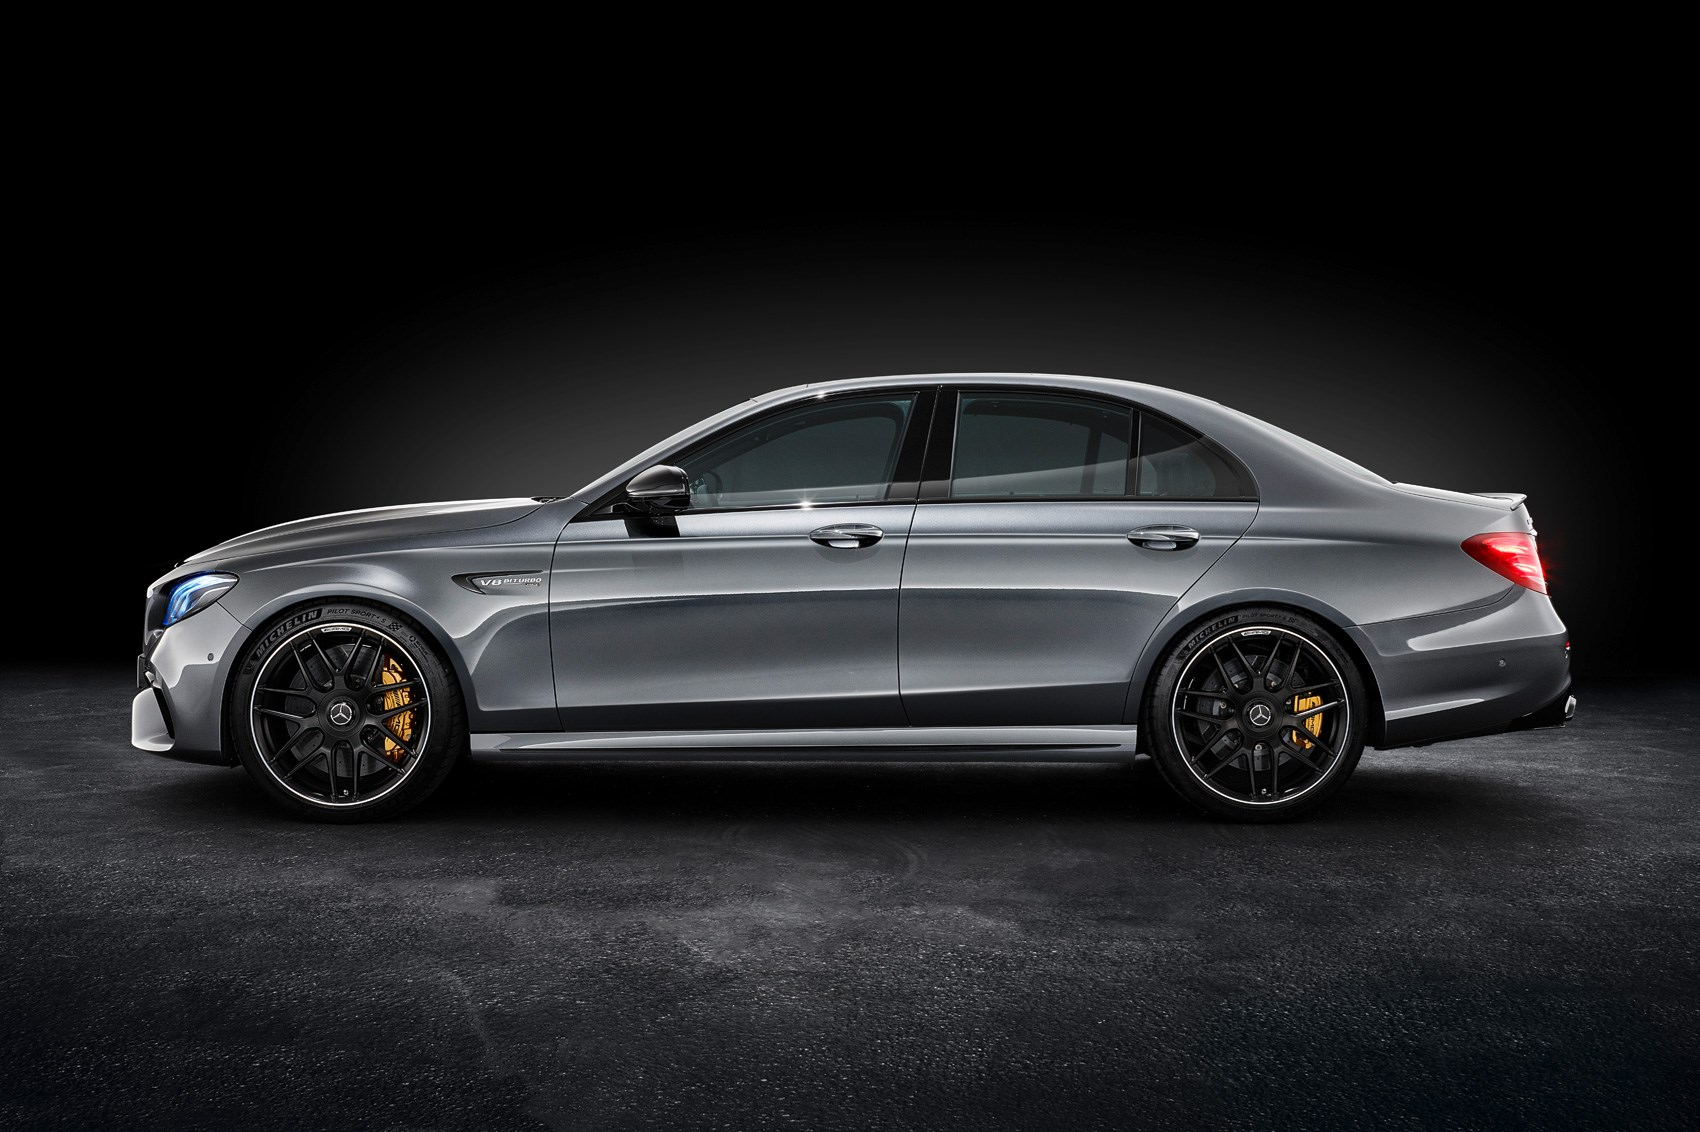 Suited and boosted 2017 mercedes amg e63 4matic revealed for Mercedes benz e63 s amg